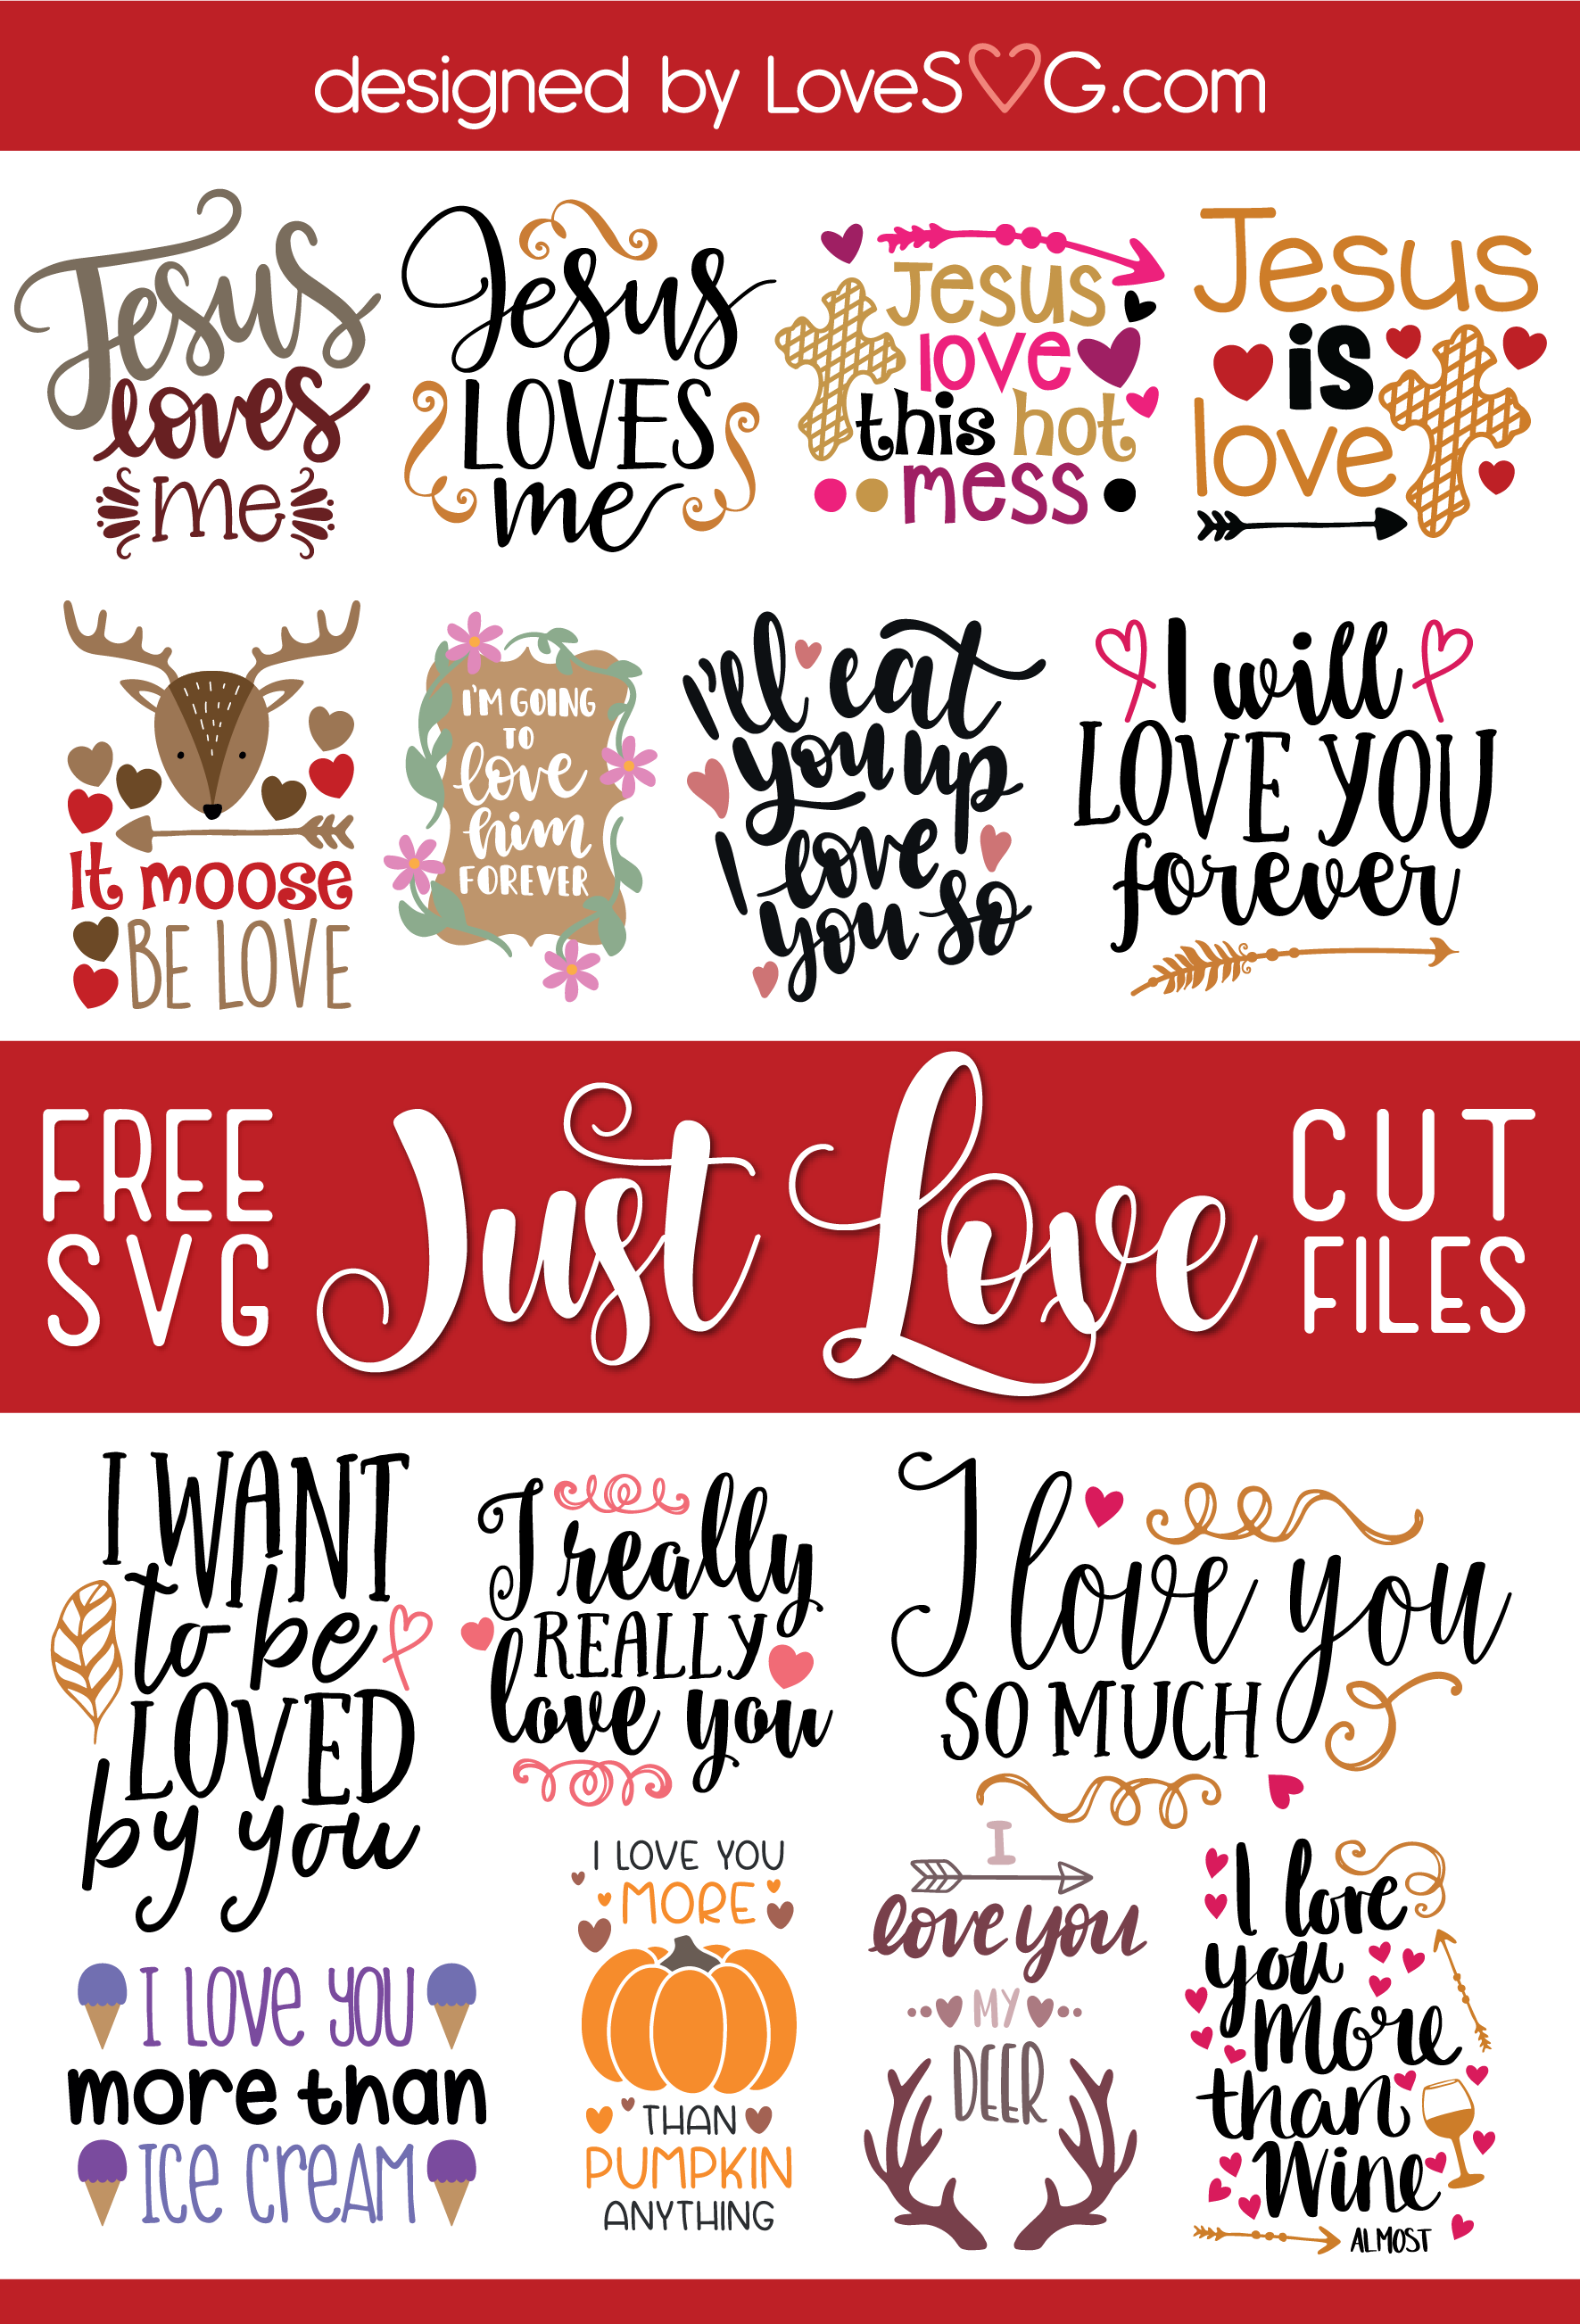 Download Pin on Free Valentine's Day SVG Cut File | LoveSVG.com